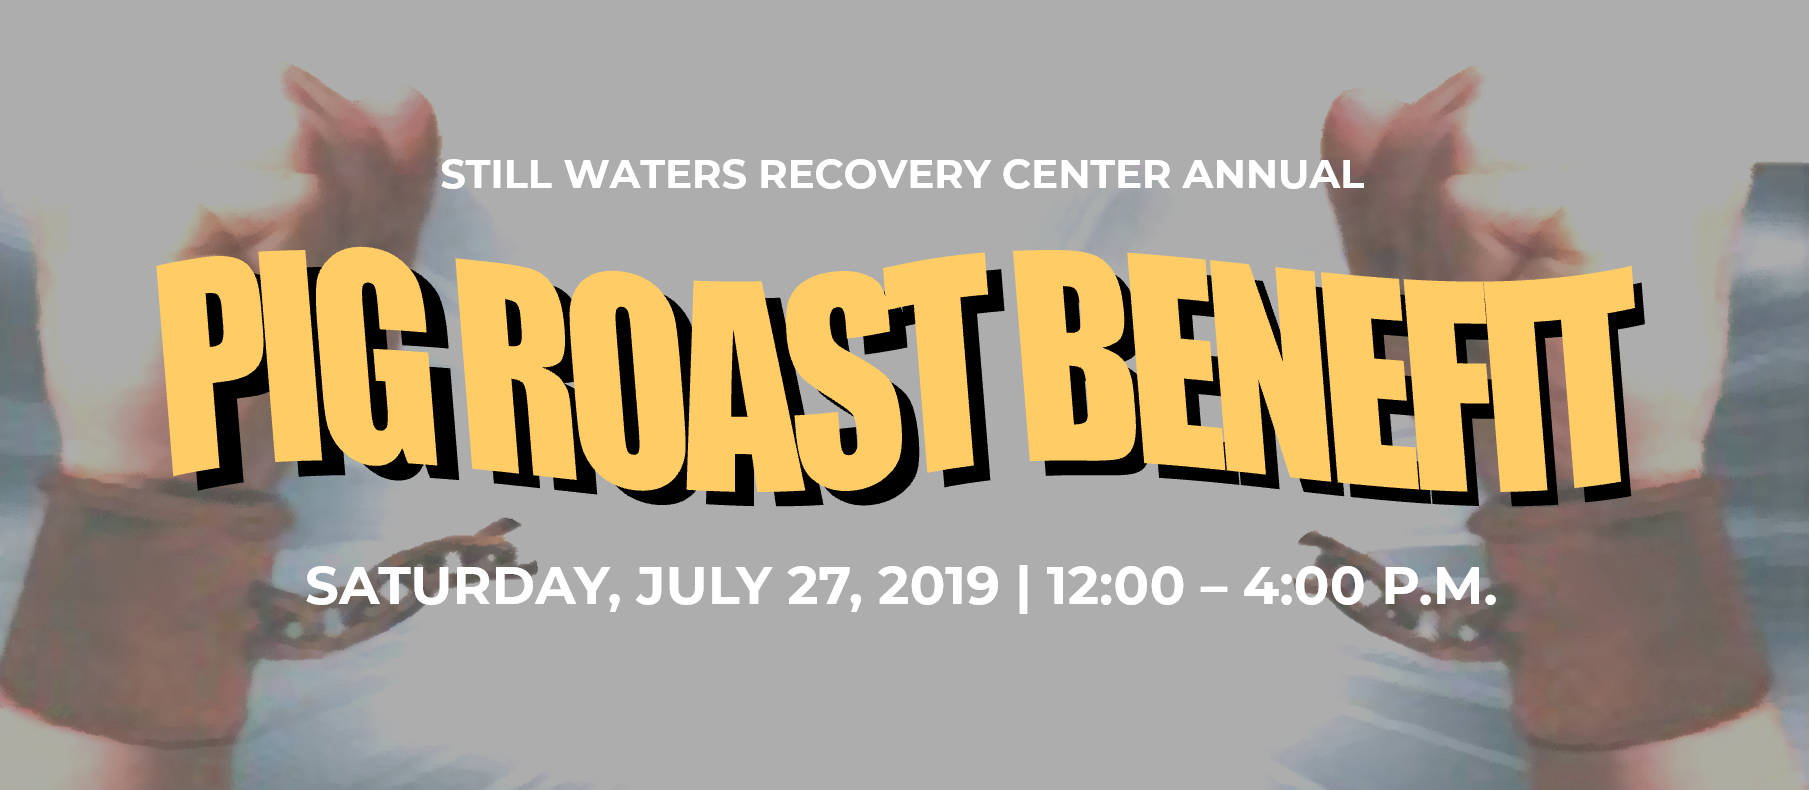 Facebook Cover Photo Pig Roast Benefit 2019.PNG